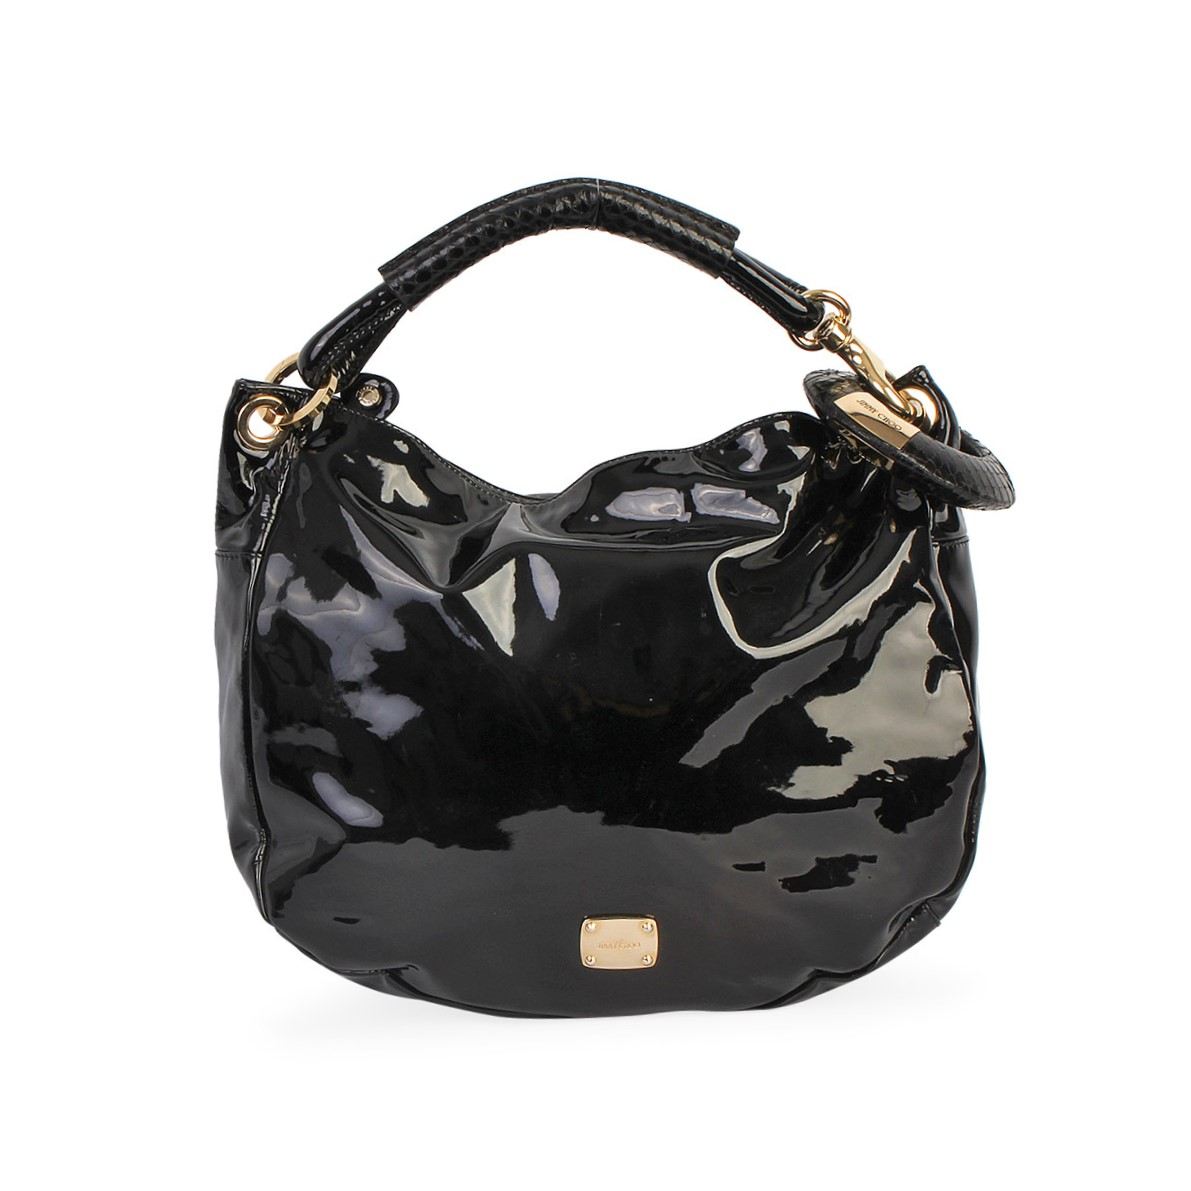 8a1c5efb76def JIMMY CHOO Patent Leather Sky Hobo Black | Luxity